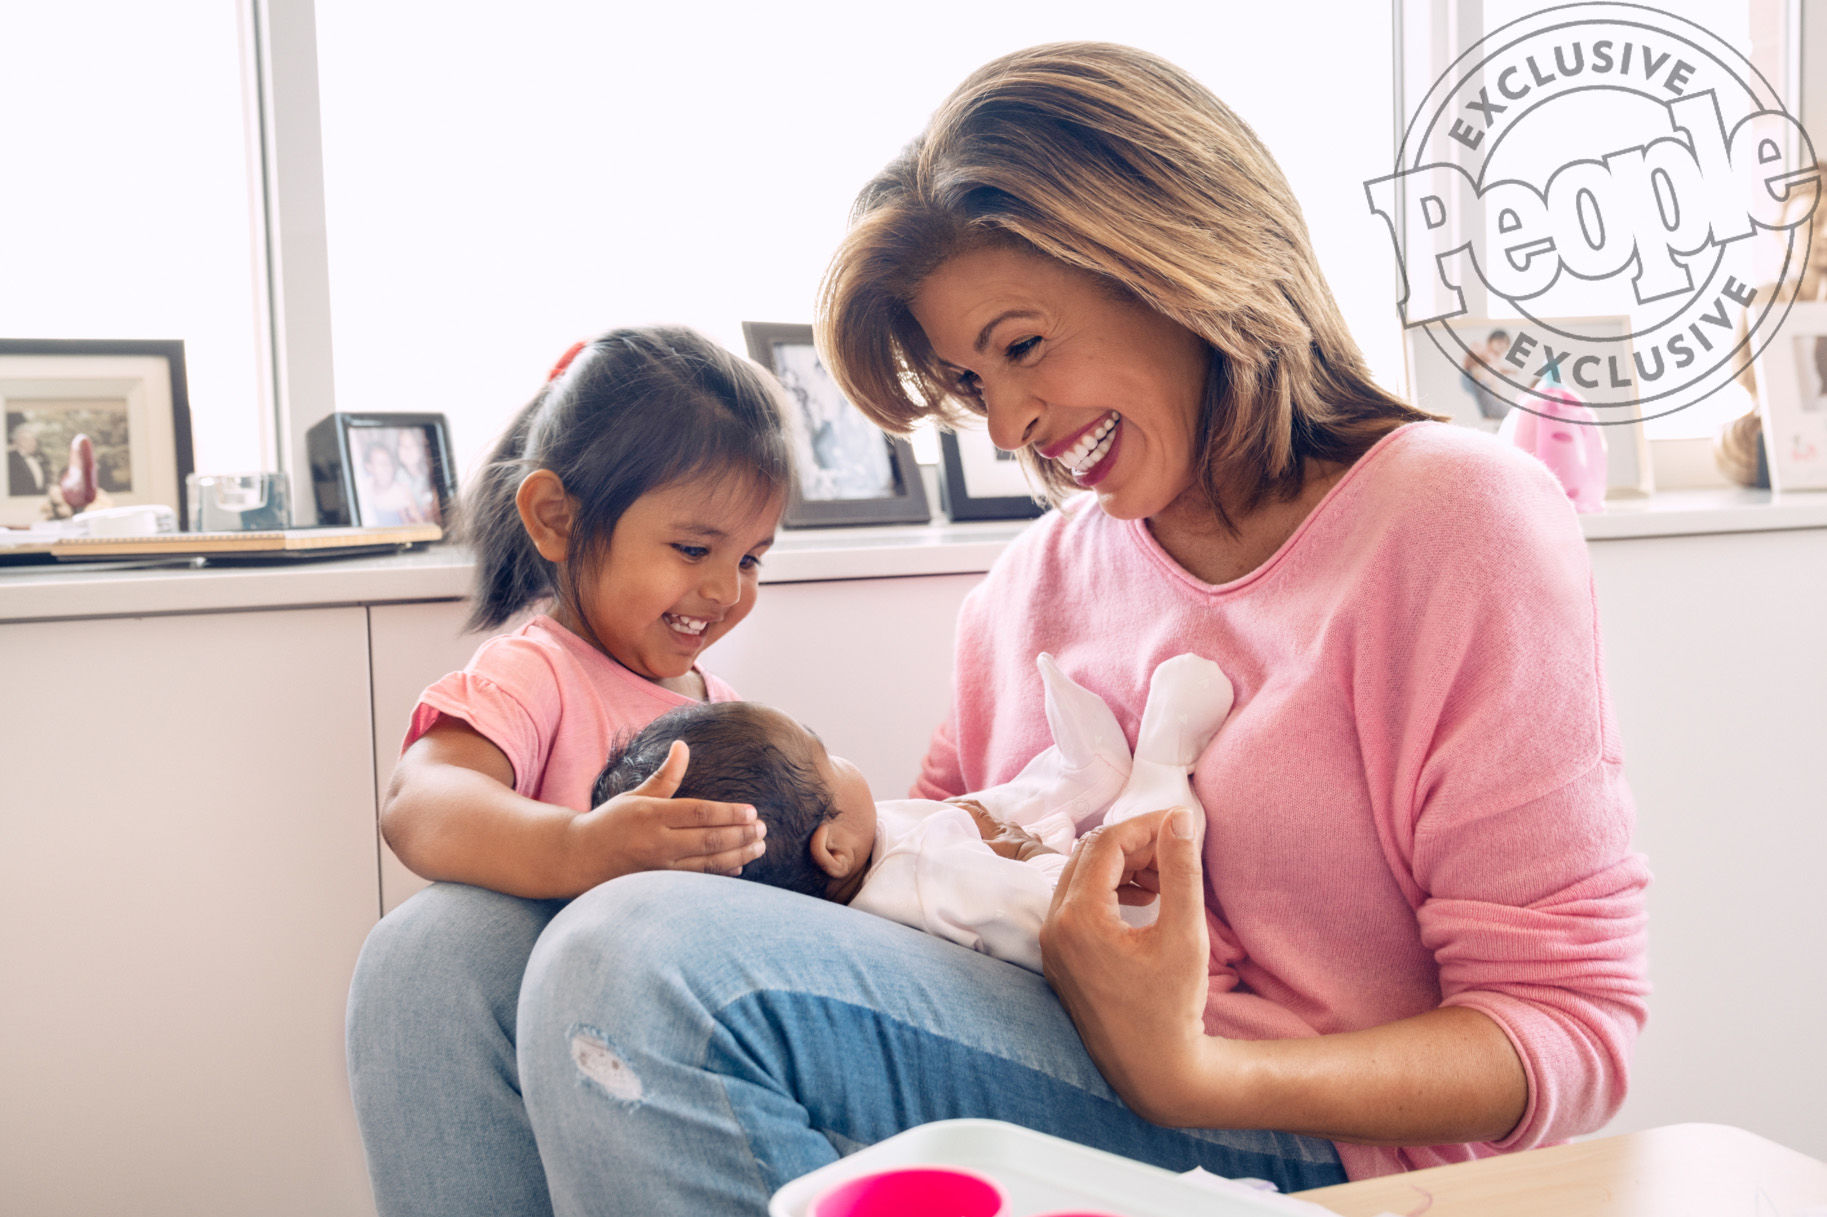 Hoda Kotb Opens Up About Adjusting to Life as a Mom of Two: 'In a Blink, Life Changes'